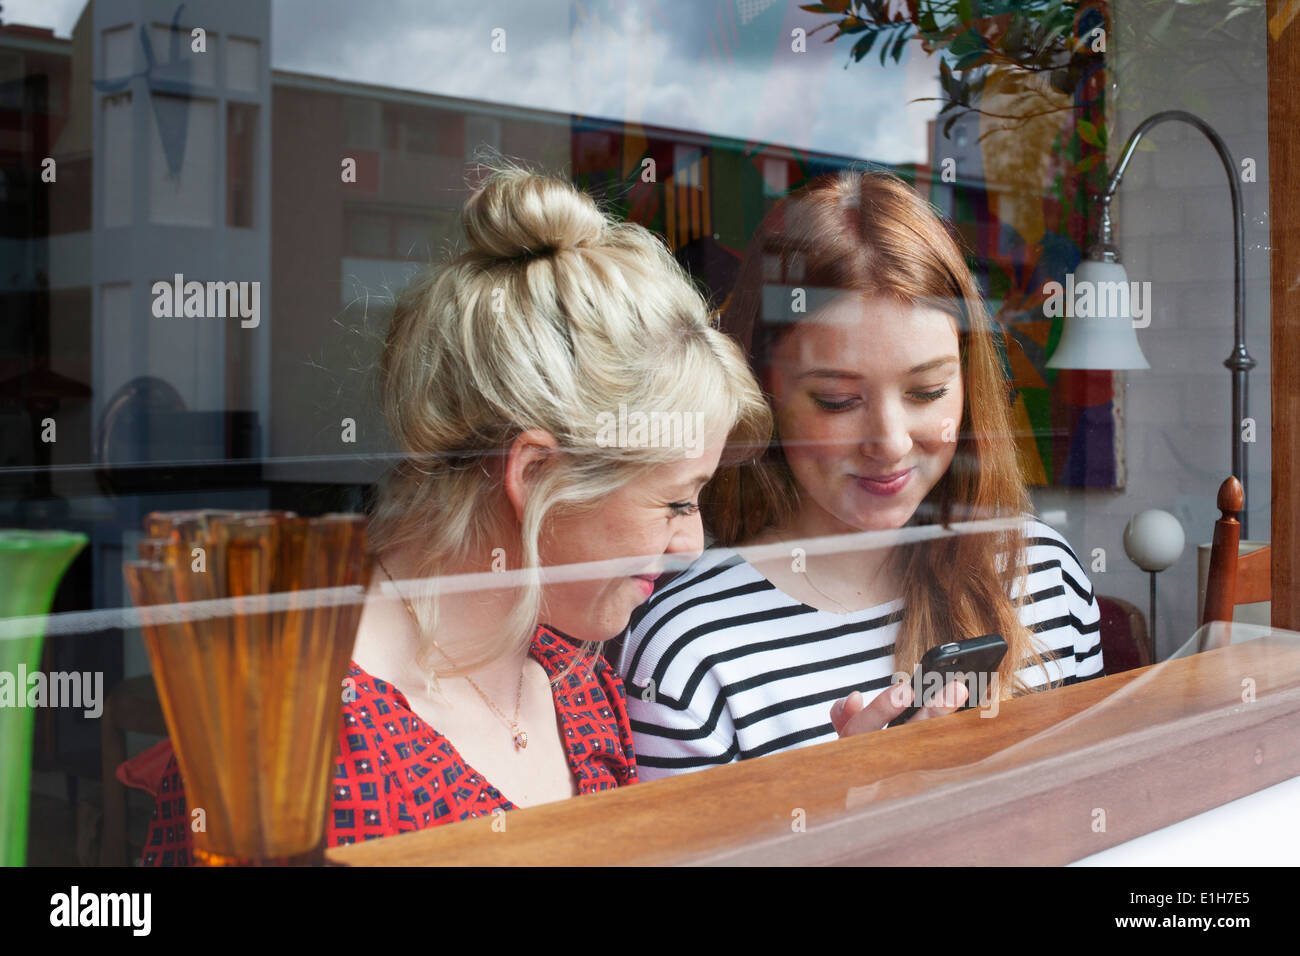 Young women through window, looking at smartphone - Stock Image